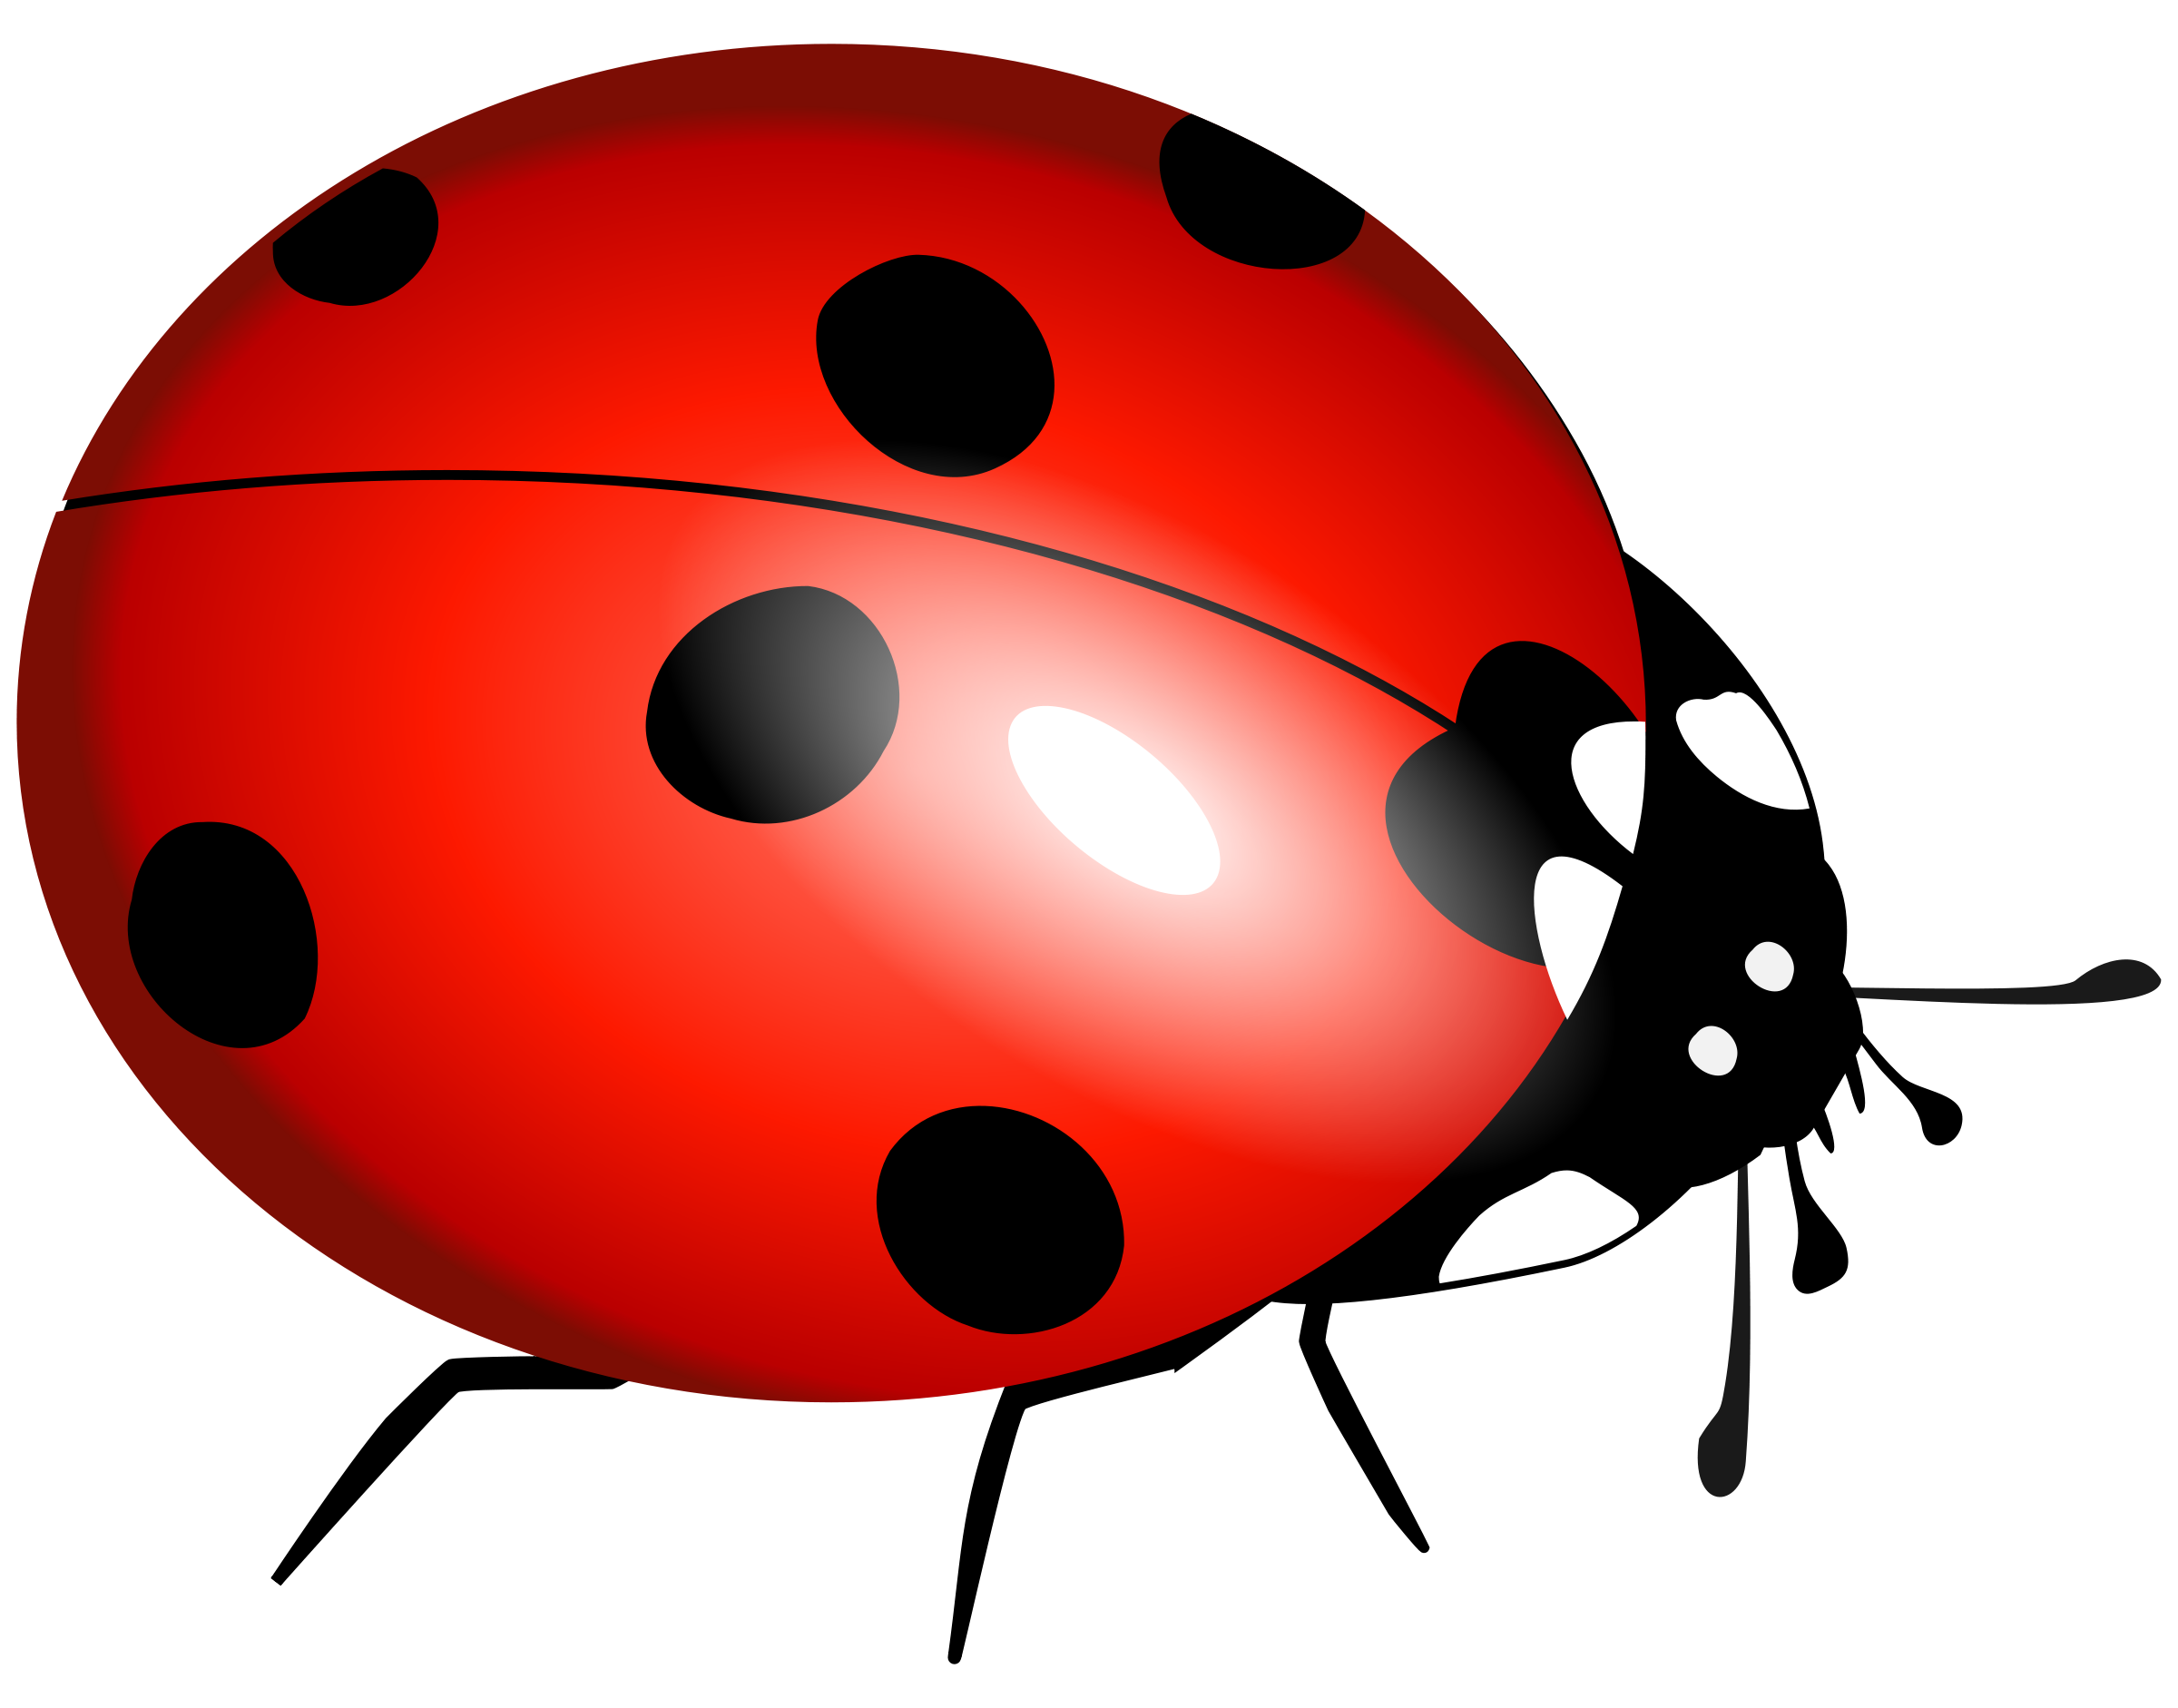 Free Ladybug Clipart at GetDrawings.com.